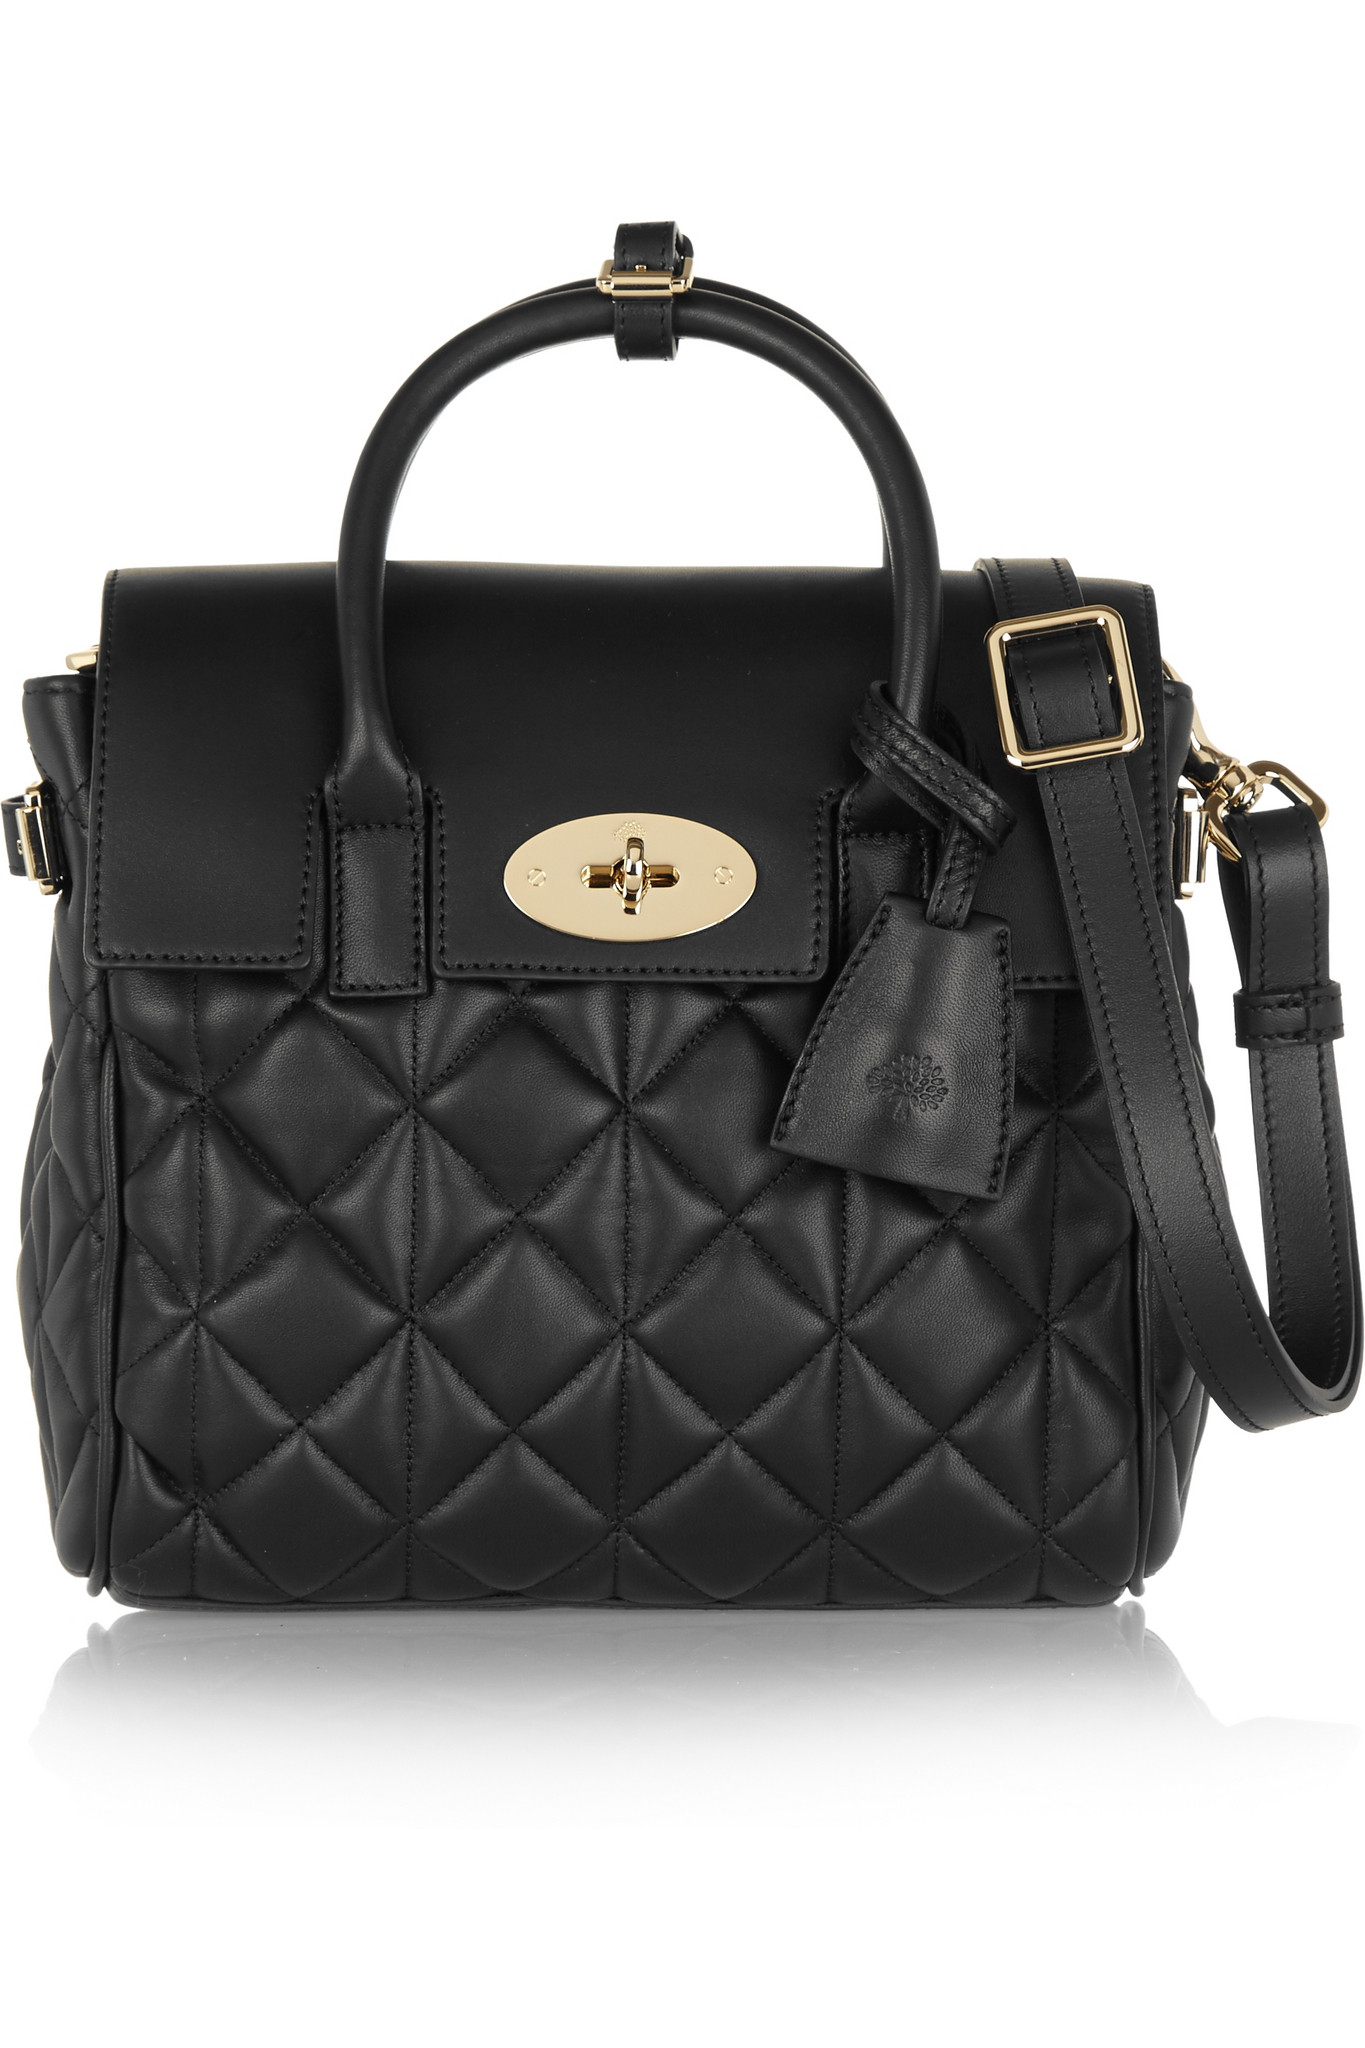 1d6efeb1c1 ... authentic mulberry cara delevigne mini quilted leather backpack in  black lyst ca470 56772